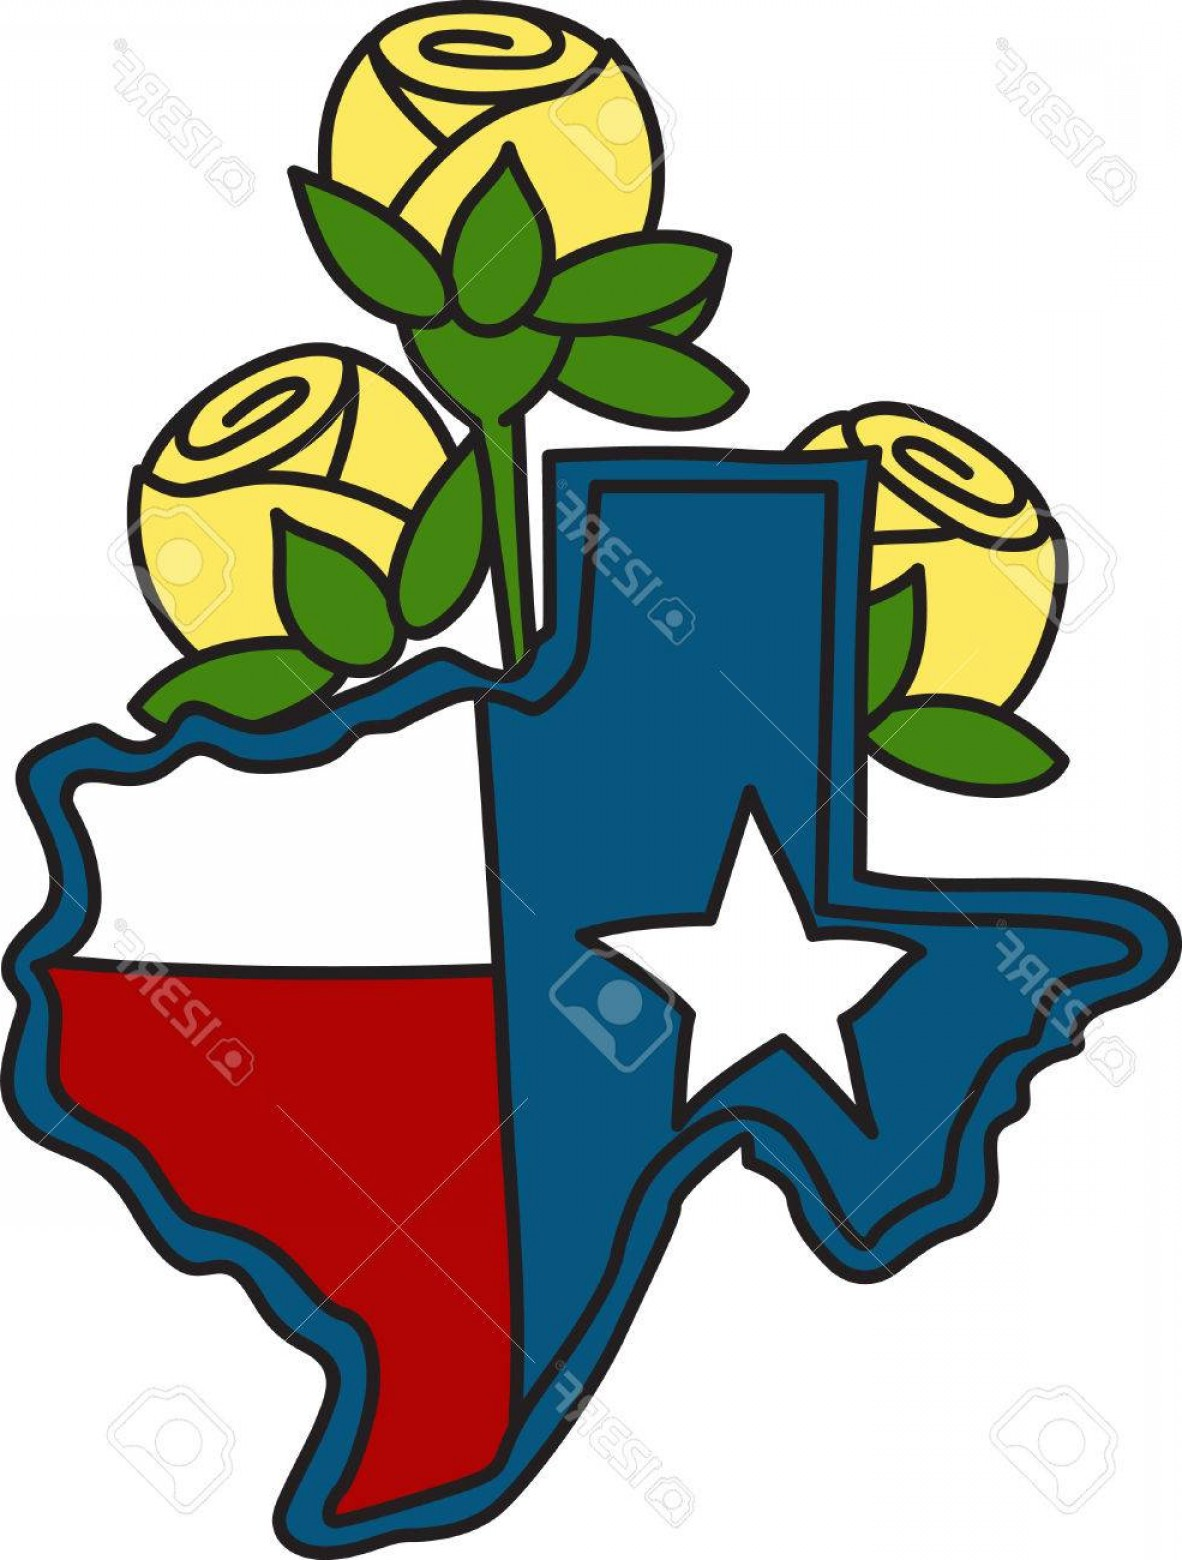 Texas Flag Vector Art: Photostock Vector The Shape Of The Lone Star State Filled With The Texas Flag And Decorated With Yellow Roses A Perfec